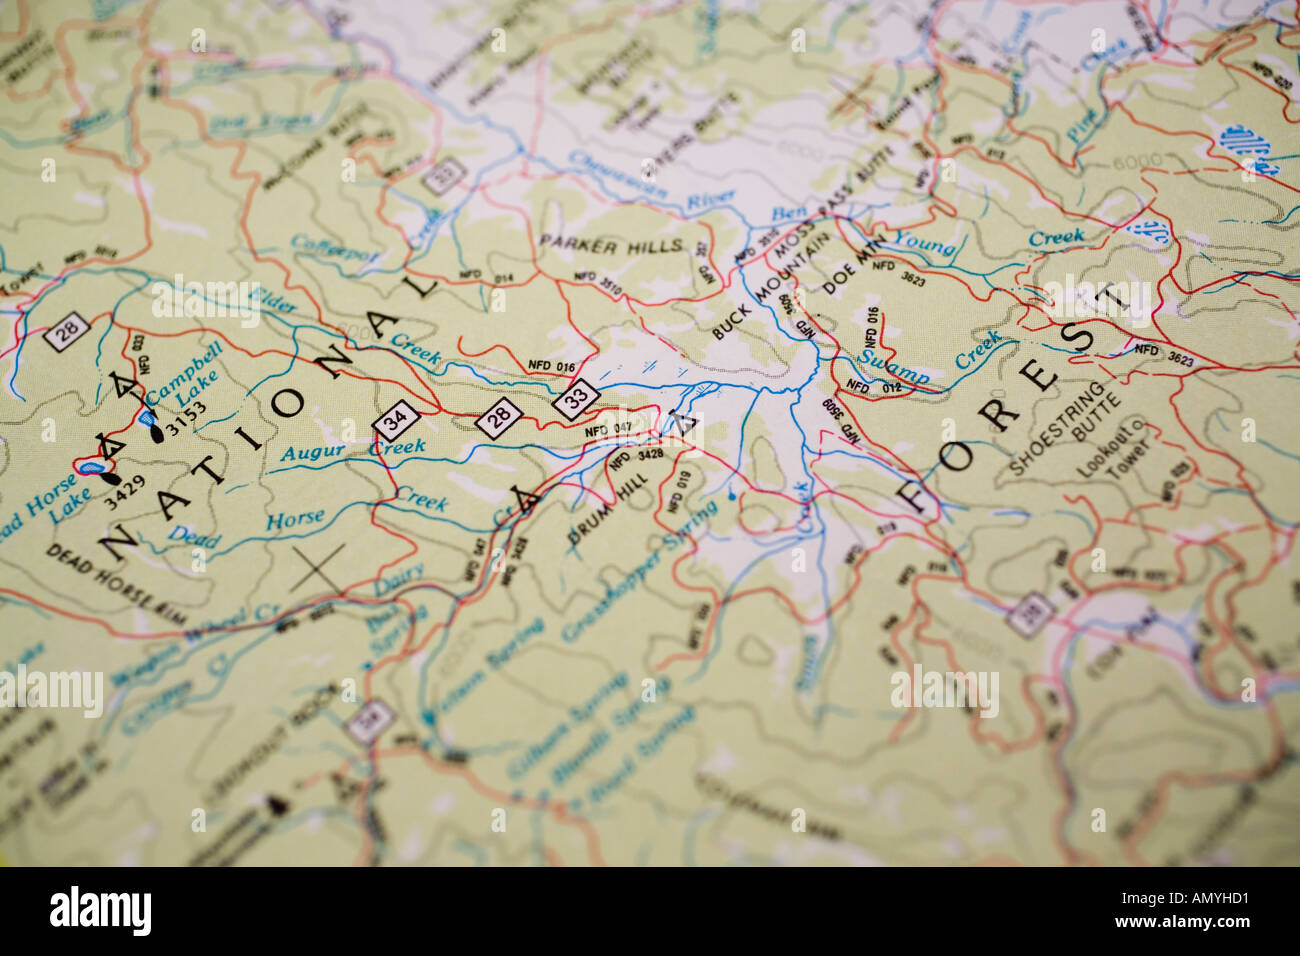 Paper Map Of National Forest Lands With Roads Oregon State USA - Map of oregon state usa